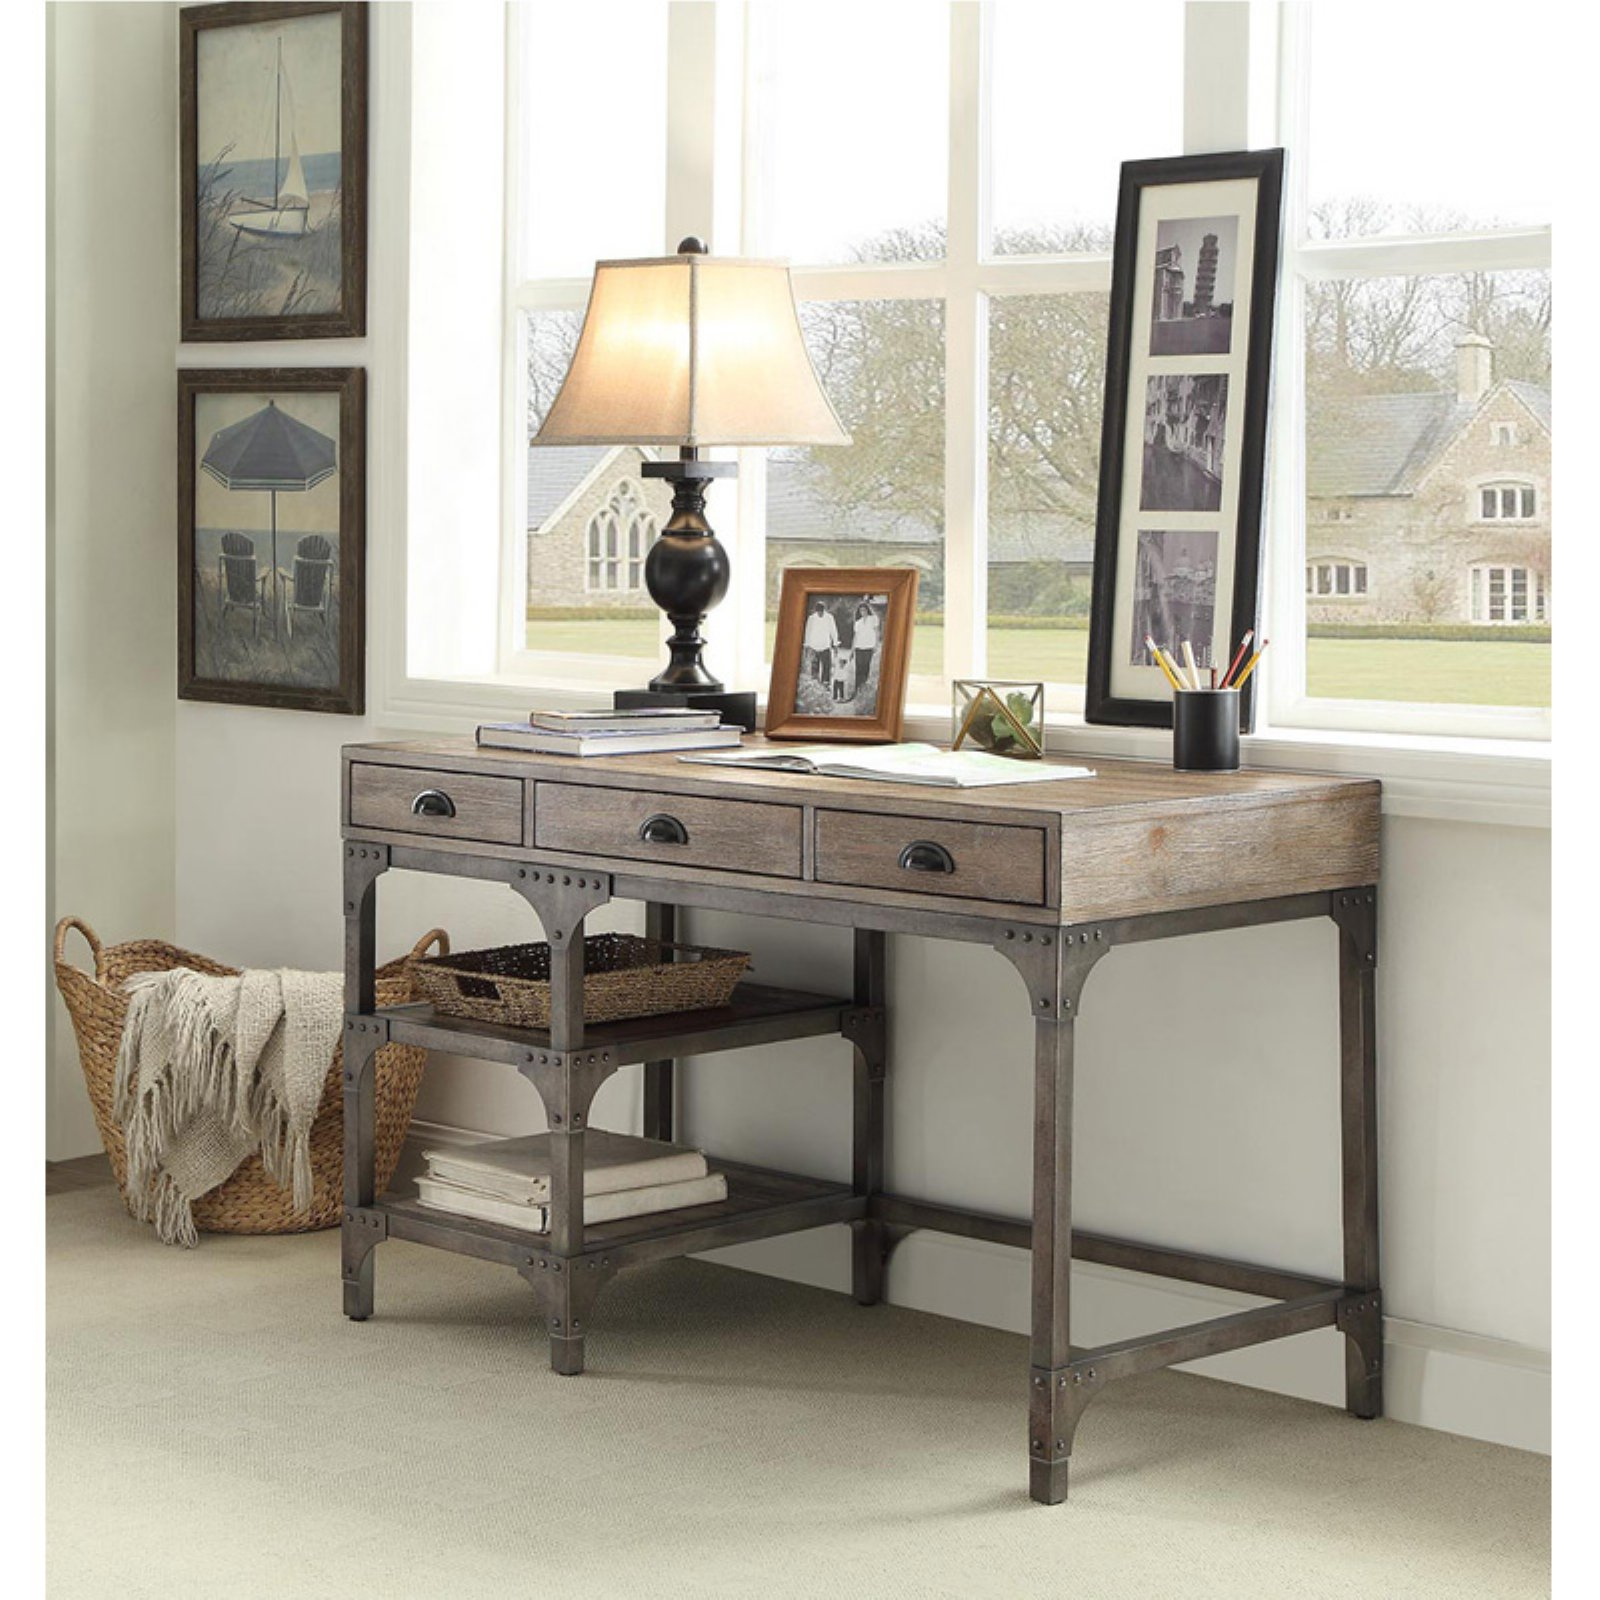 Acme Gorden Desk, Weathered Oak and Antique Silver